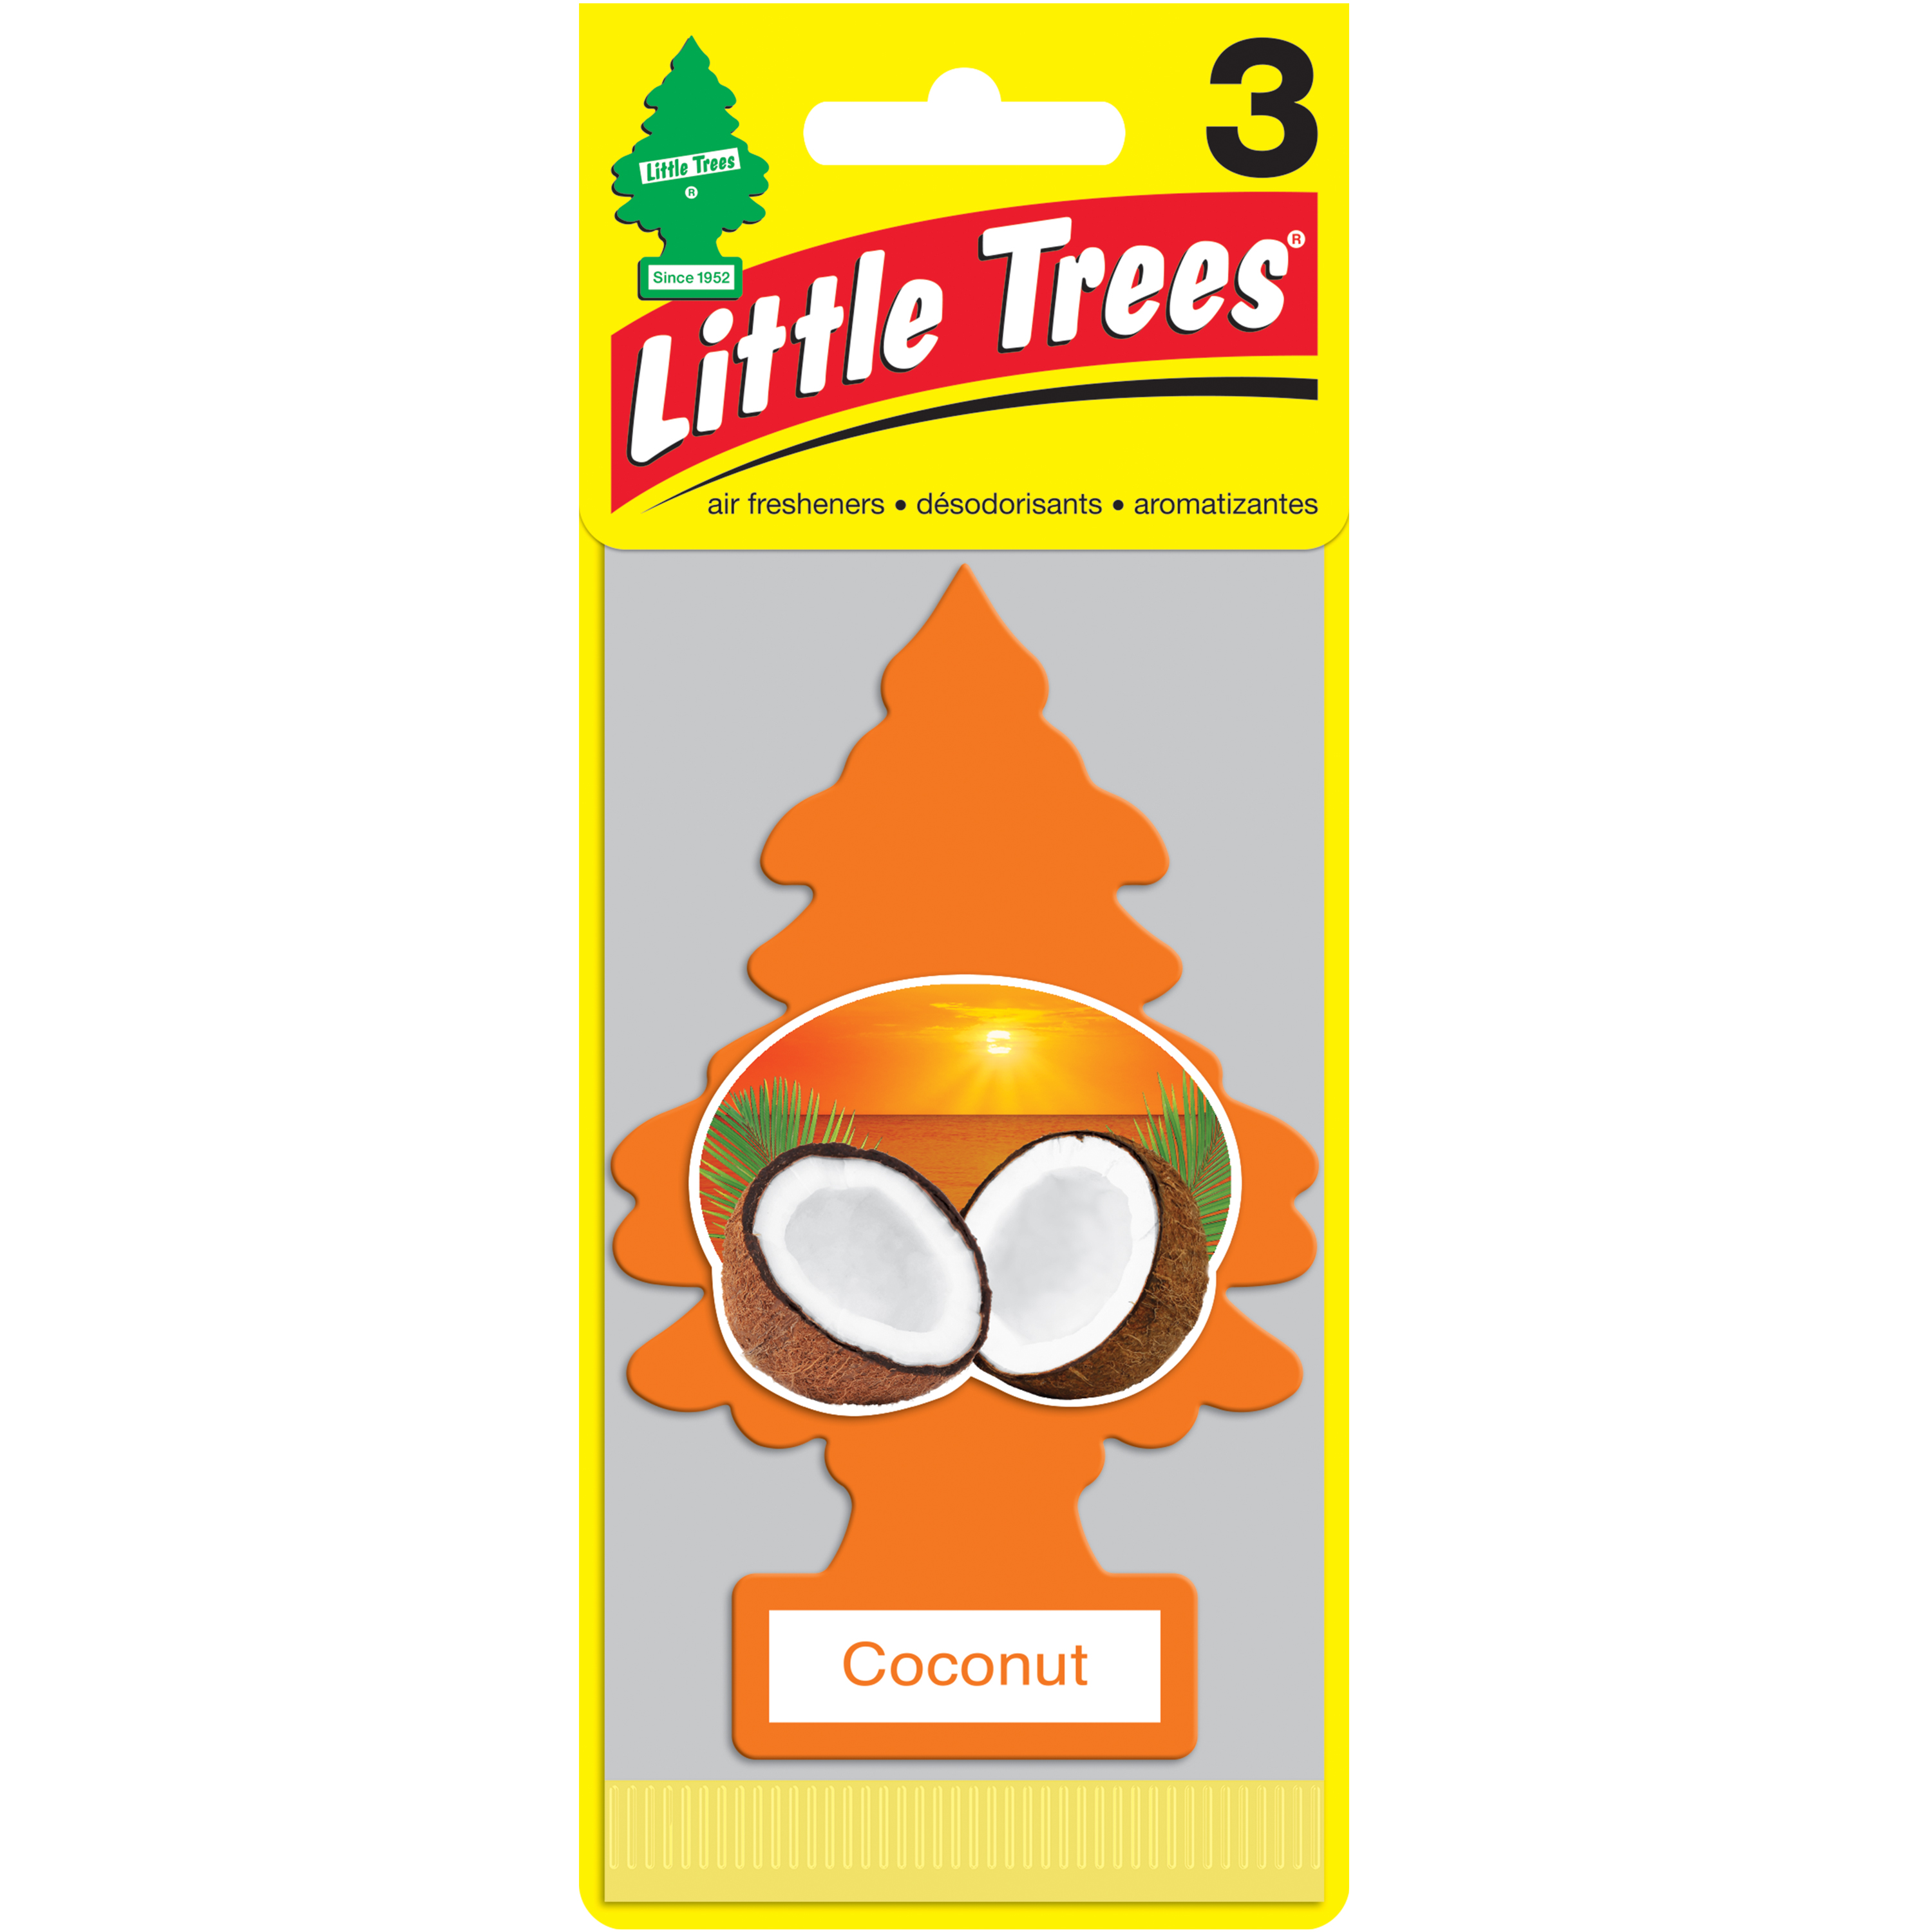 Little Trees Air Freshener Coconut Fragrance 3-Pack